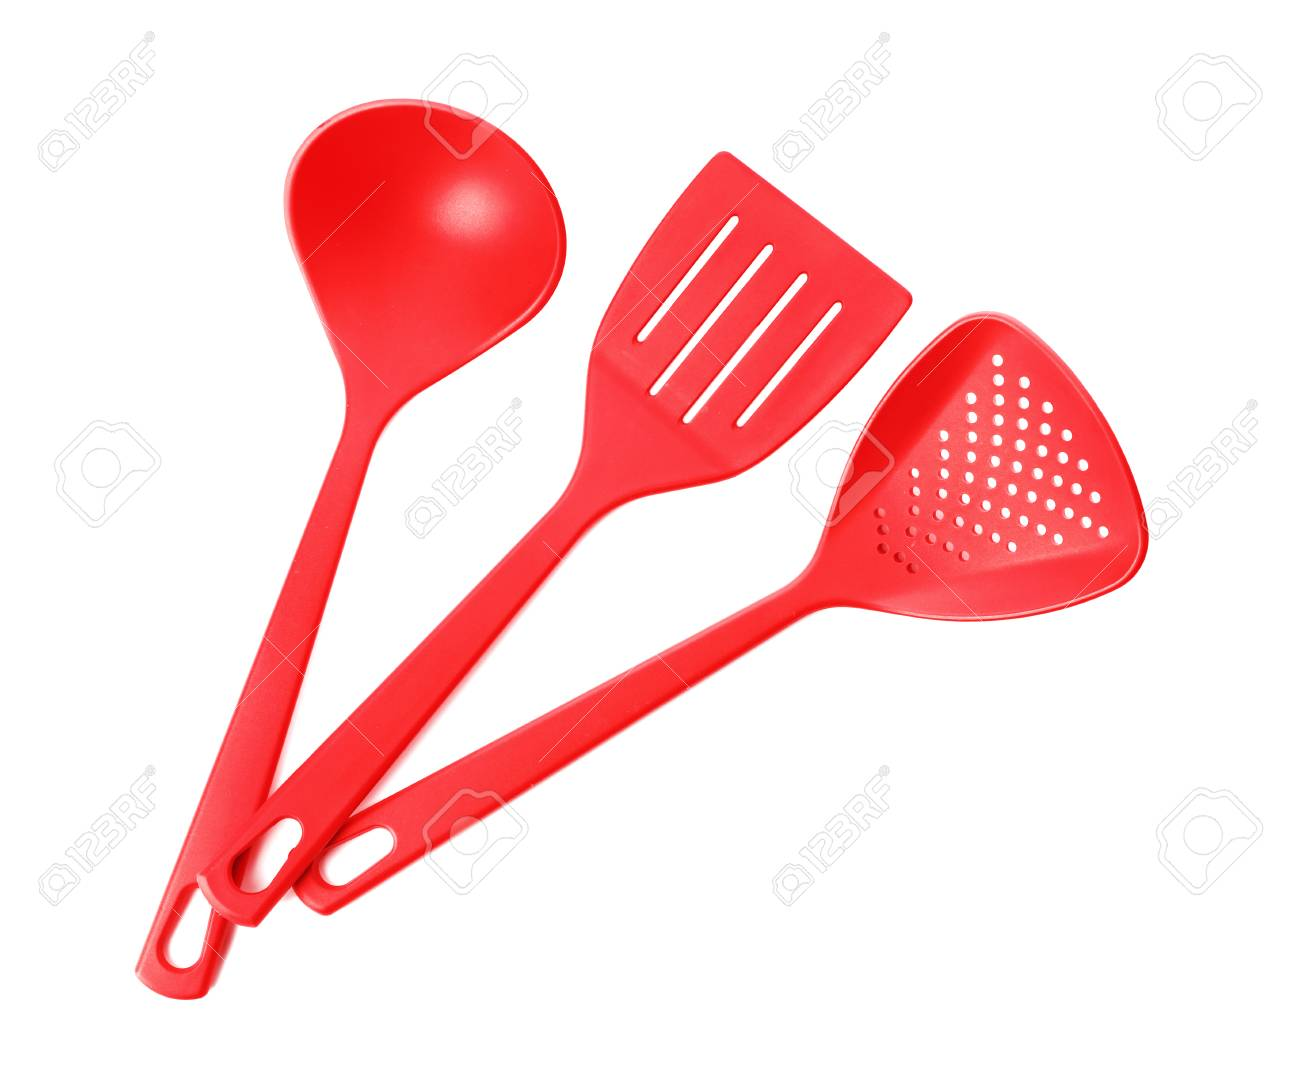 Different colorful kitchen utensils on white background